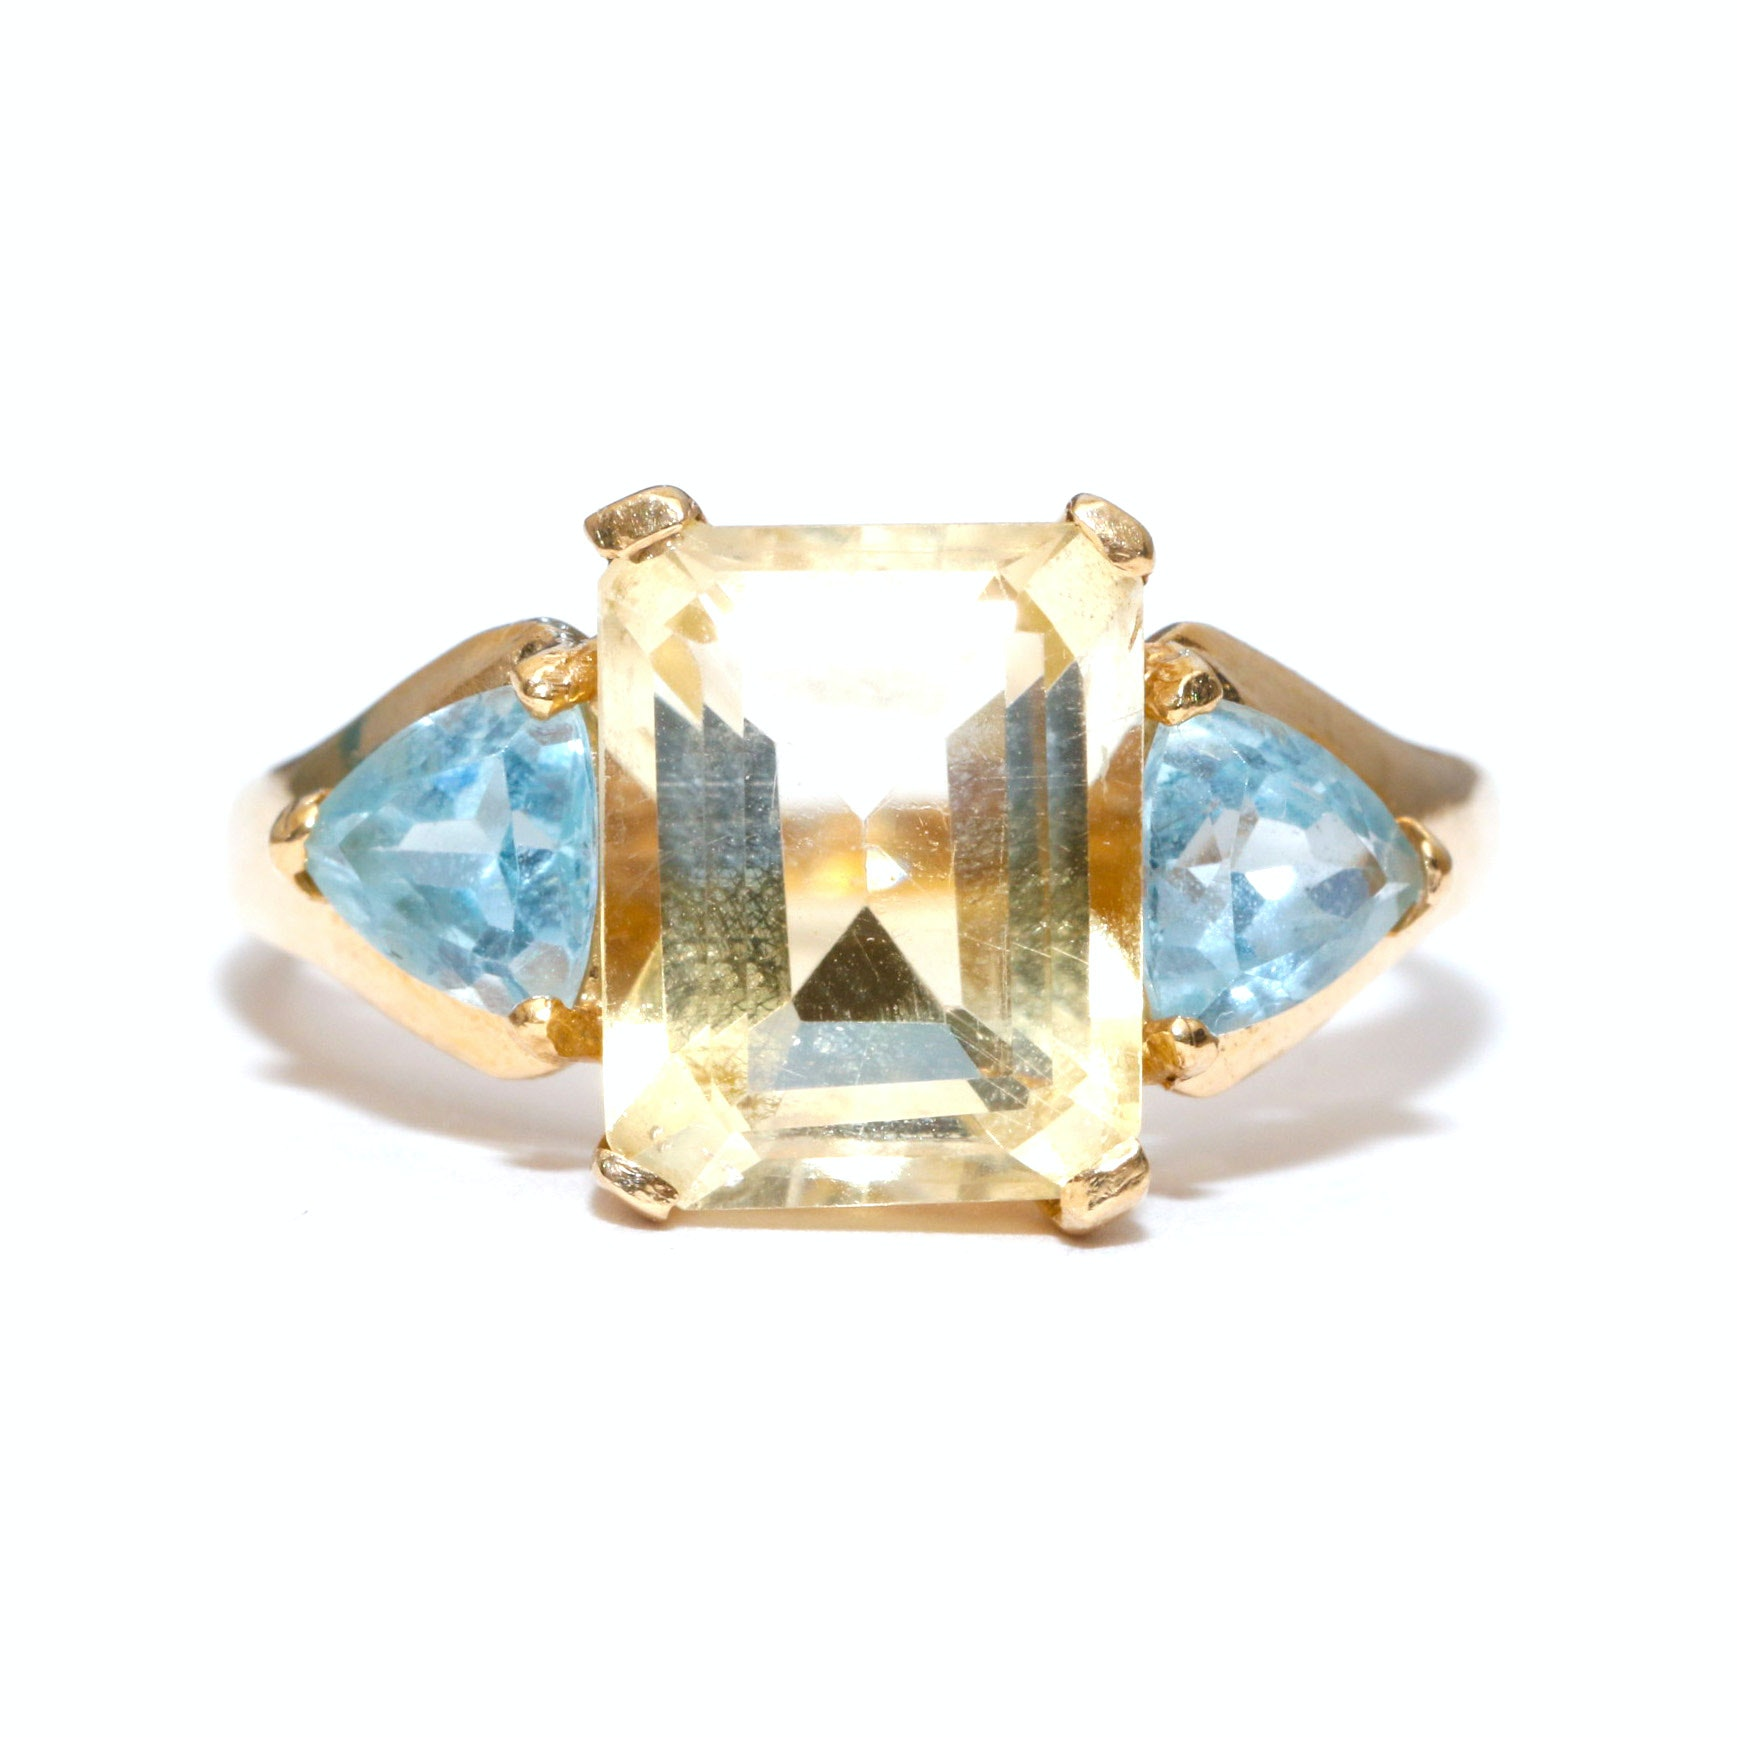 10K Yellow Gold Citrine and Blue Topaz Cocktail Ring